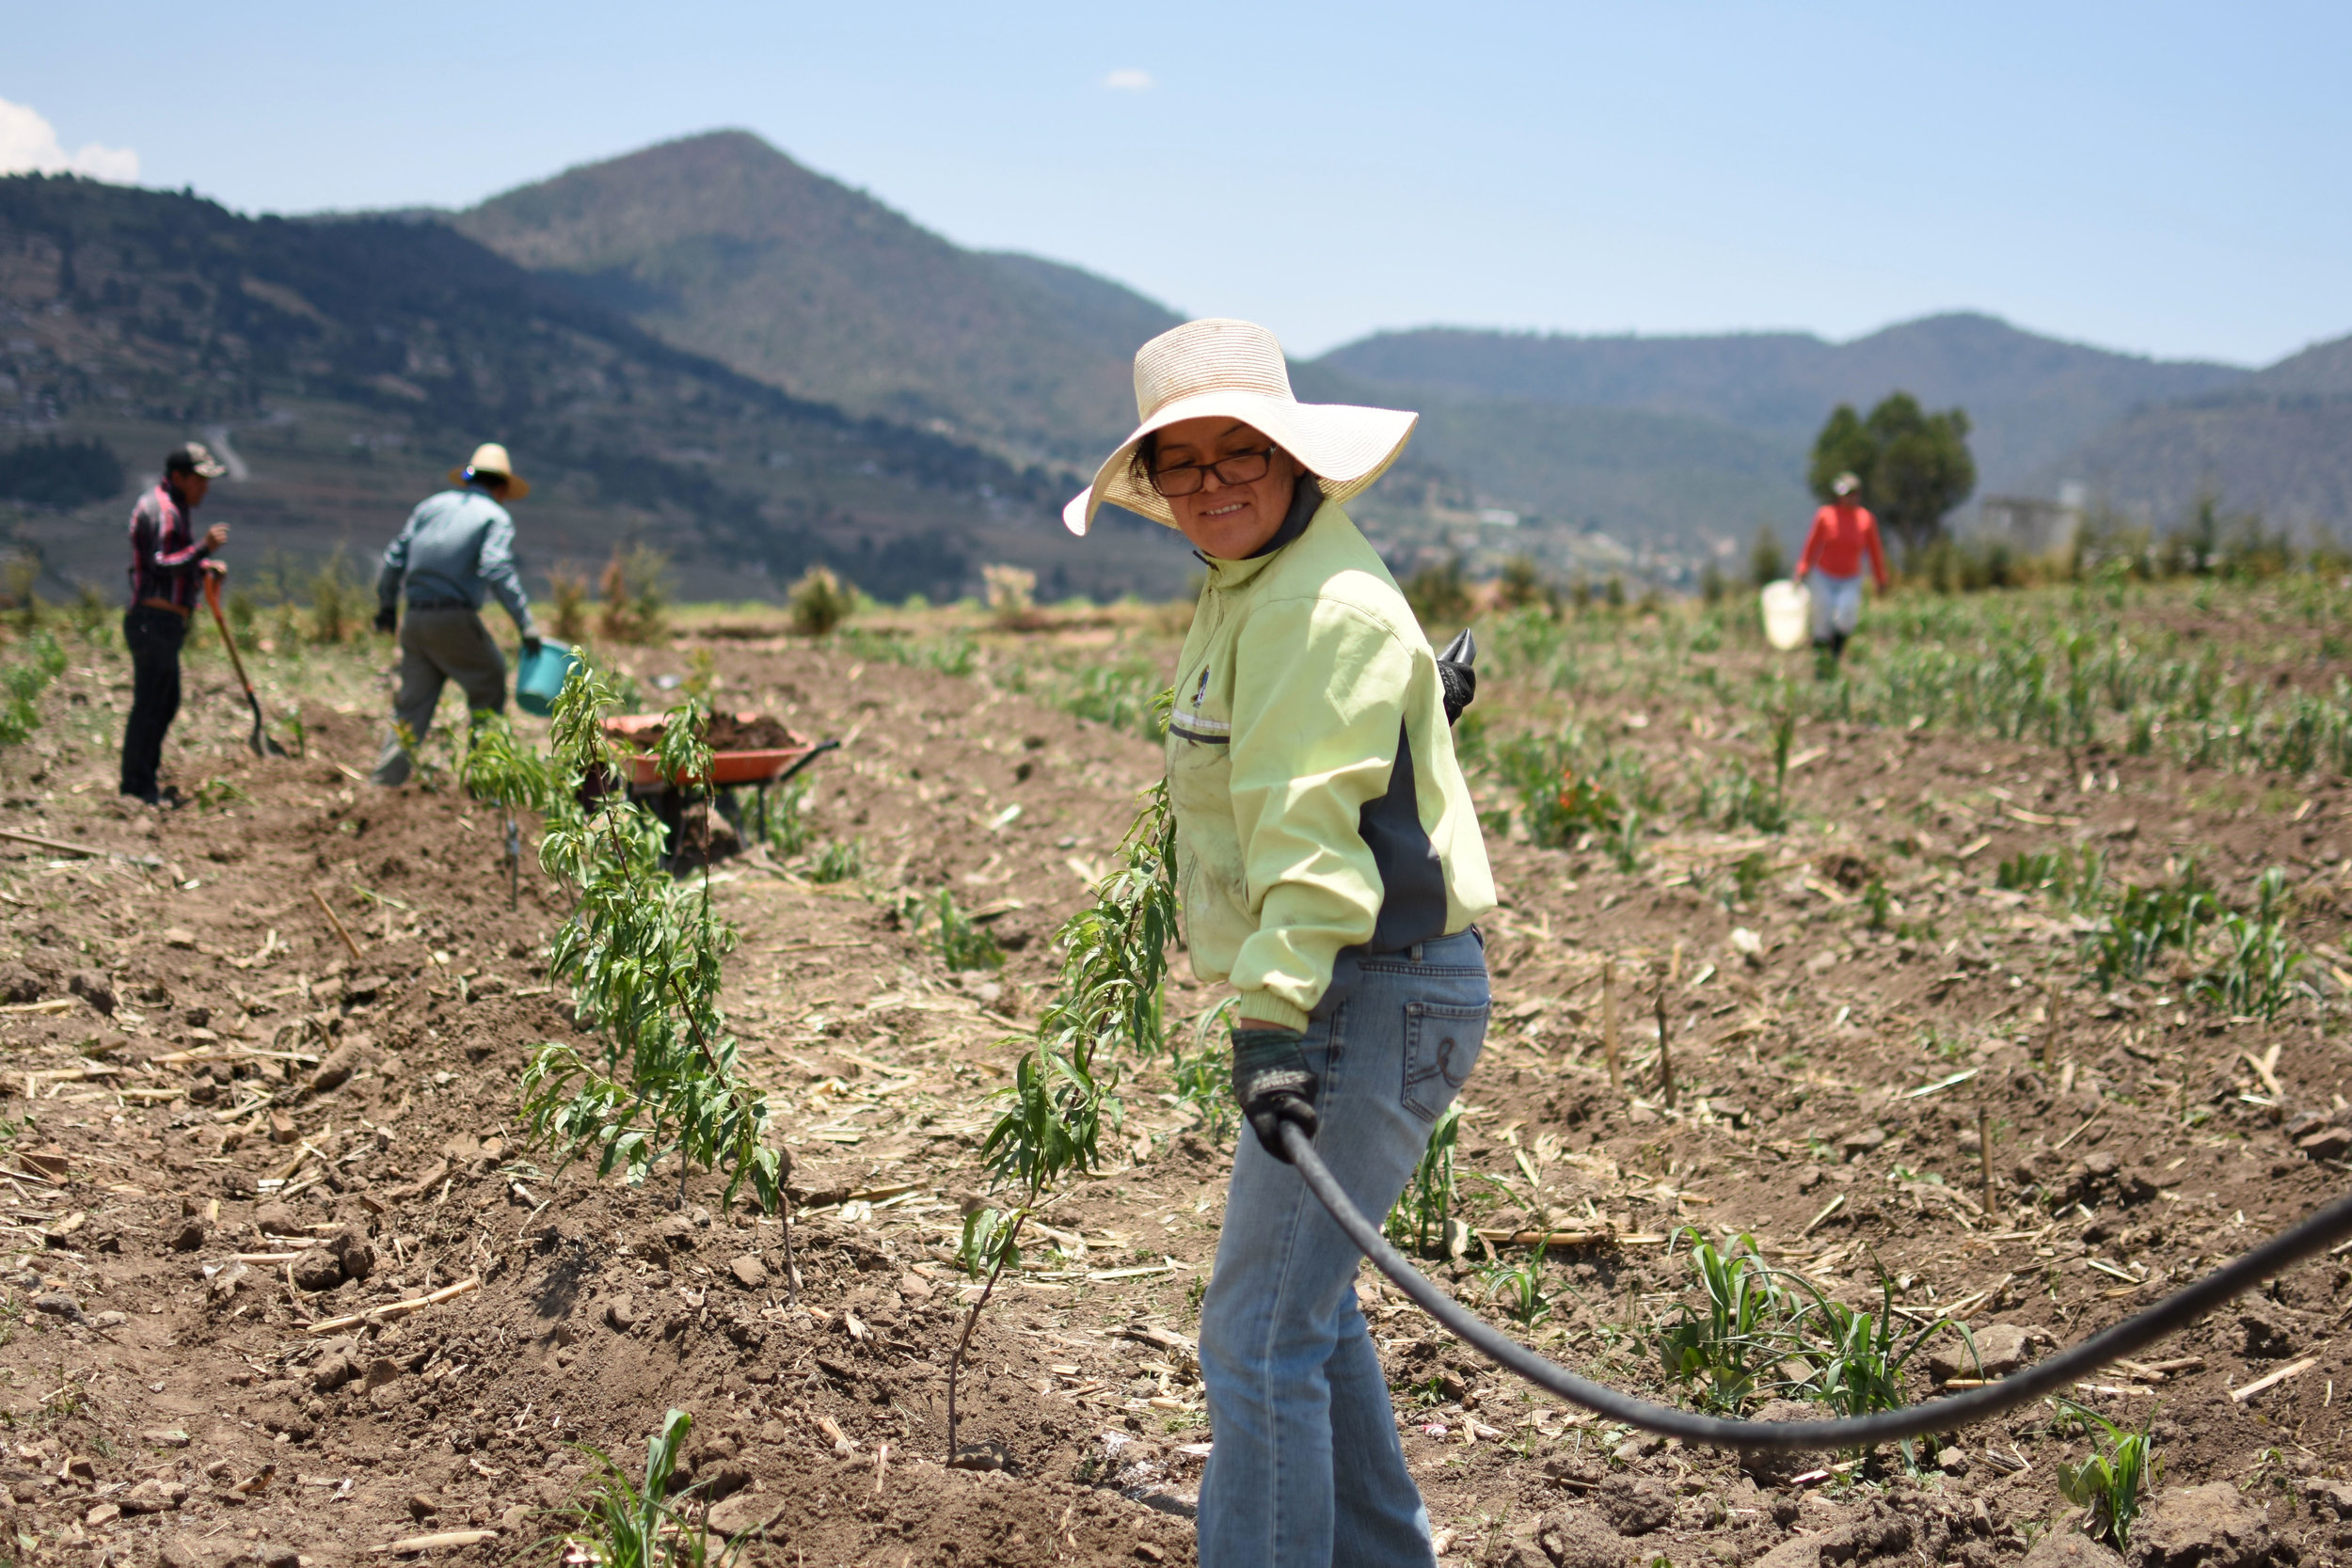 Rocio Albino Garduño waters her crops in San Juan Coajomulco, Mexico. Garduño is a professor of sustainable development at the Intercultural University of the State of Mexico. She uses her farm and home as a way to educate her community about more sustainable farming practices. Image by Meg Vatterott. Mexico, 2018. Part of  Sustainability Utopia Among The Mazahua  story.